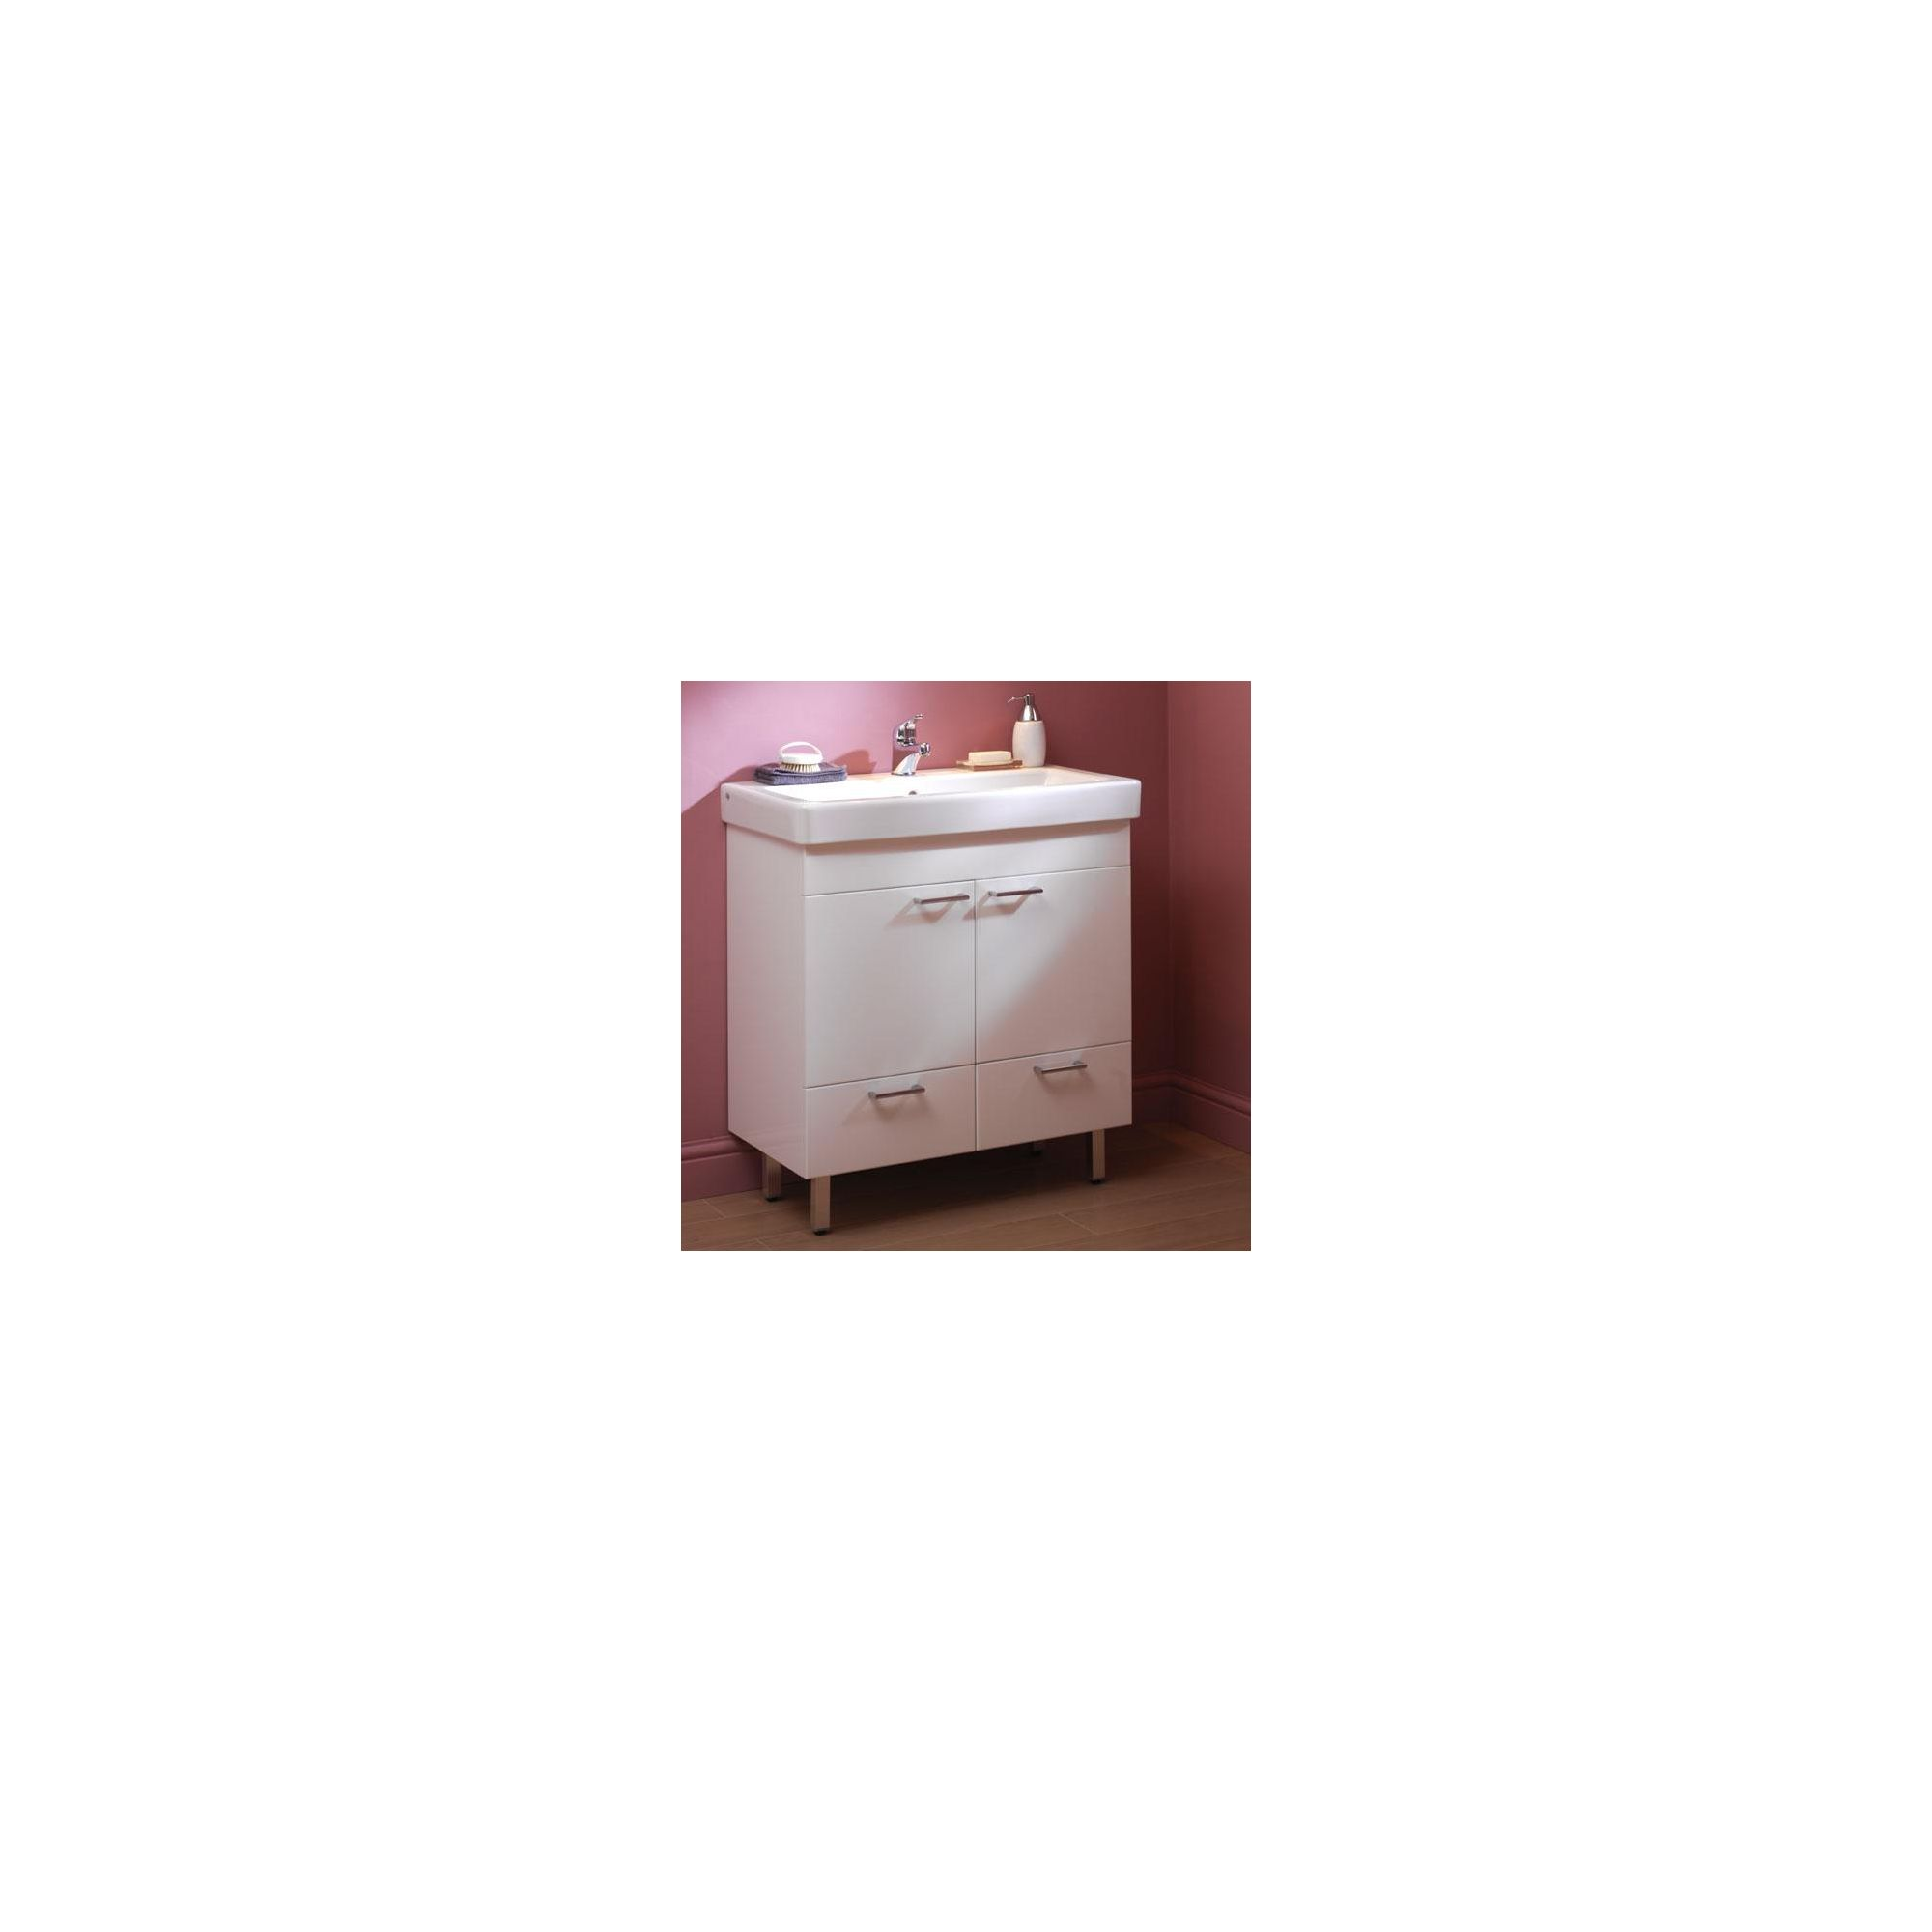 Duchy Trerise White Floor Standing 2 Door 2 Drawer Vanity Unit and Basin - 800mm Wide x 445mm Deep